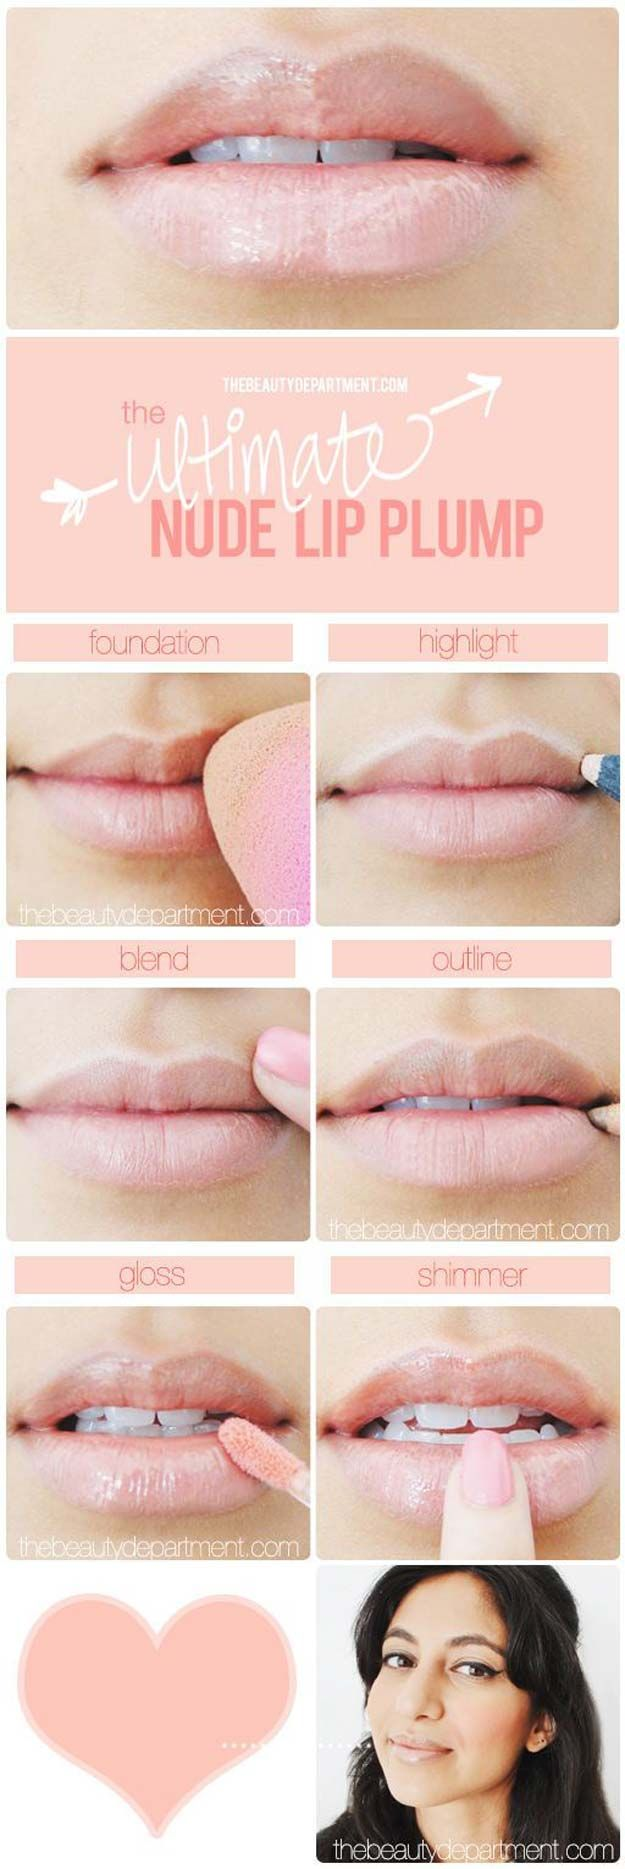 Lipstick Tutorials - Best Step by Step Makeup Tutorial How To - The Uptown Lip - Easy and Quick Ways to Apply Lipstick and Awesome Beauty Ideas - Cool Ideas for Teen Makeup for School, Party and Special Occasion - Makeup Tutorials for Beginners - Lip Liner Tips and Tricks to Add Volume, DIY Lip Techniques for Fuller Lips - DIY Projects and Crafts for Teens http://diyprojectsforteens.com/best-lipstick-tutorials